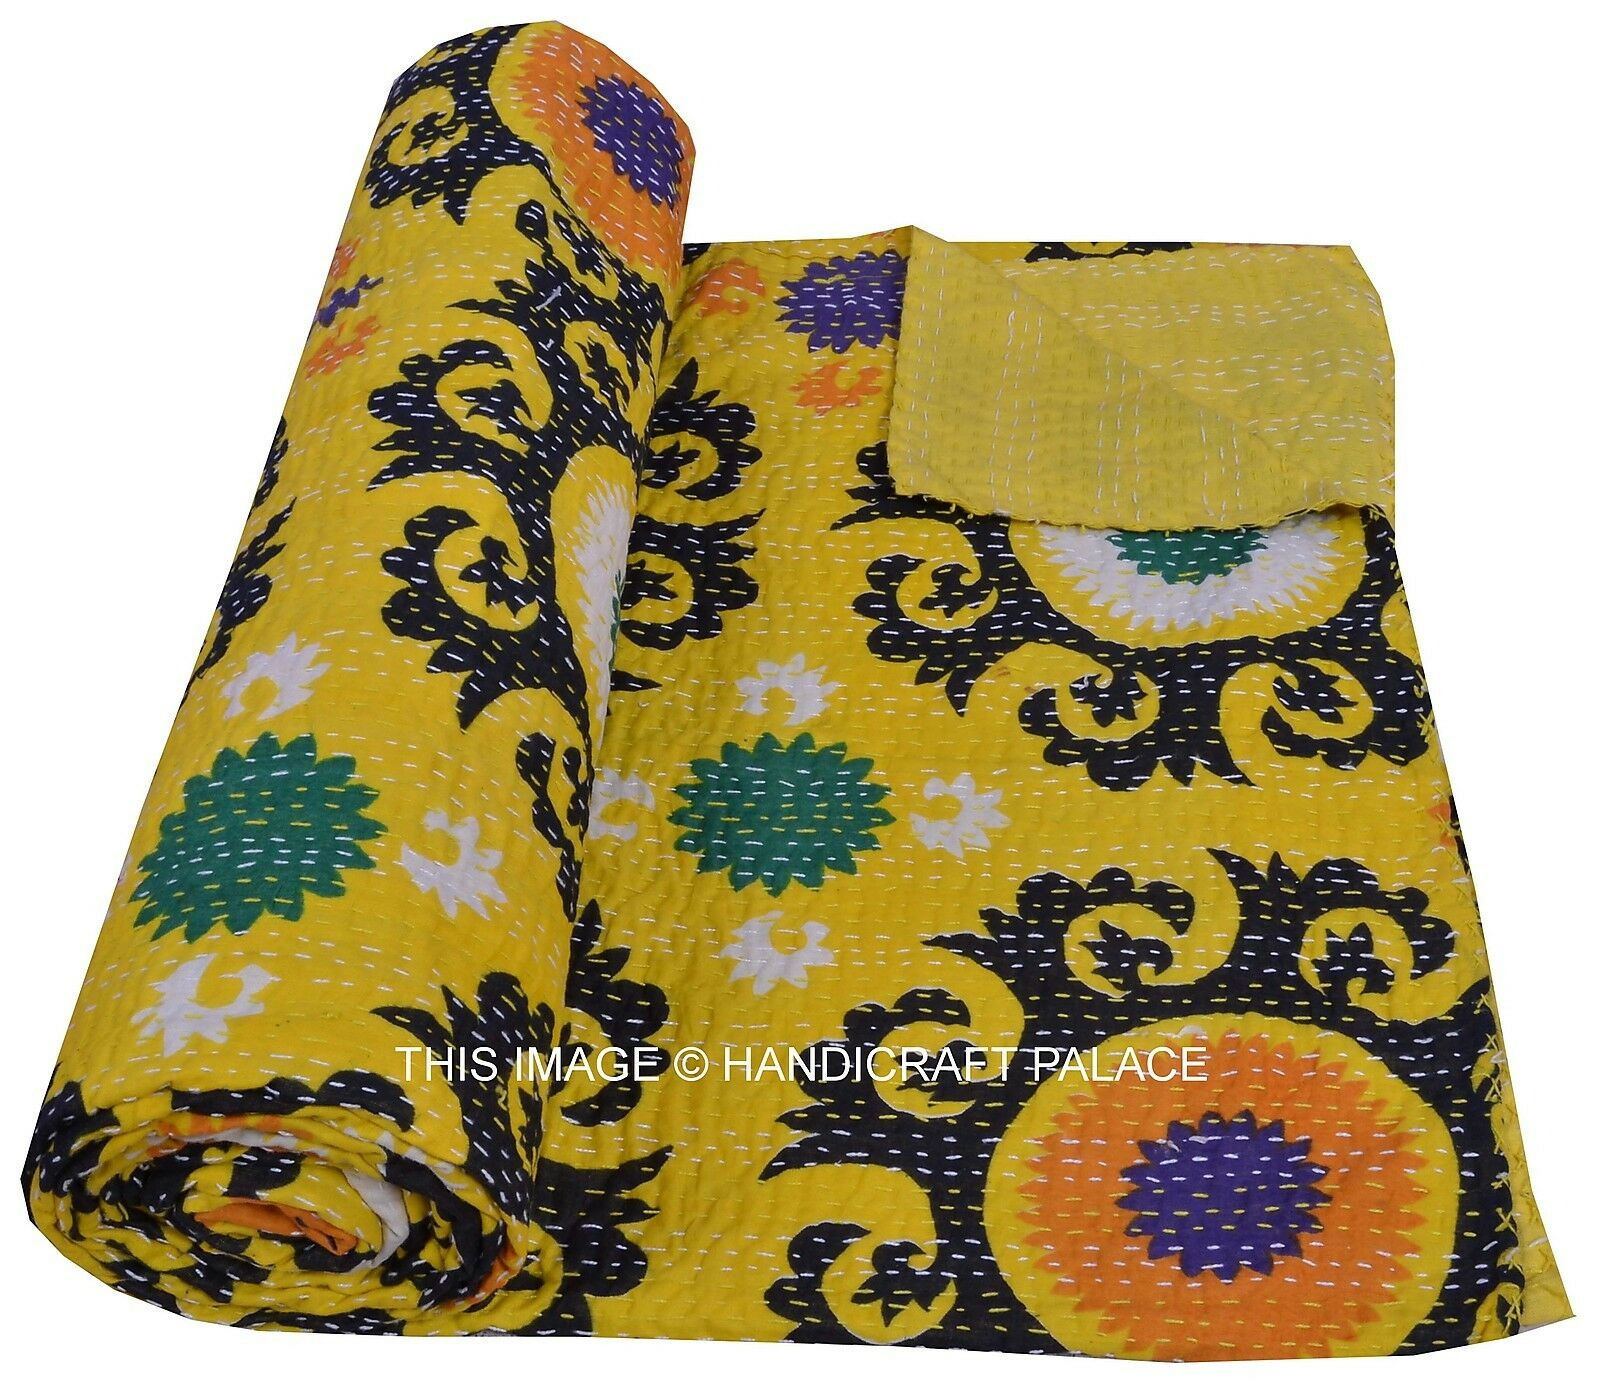 Indian Cotton Queen Kantha Quilt Suzani Printed Gelb Bedspread Blanket Decor